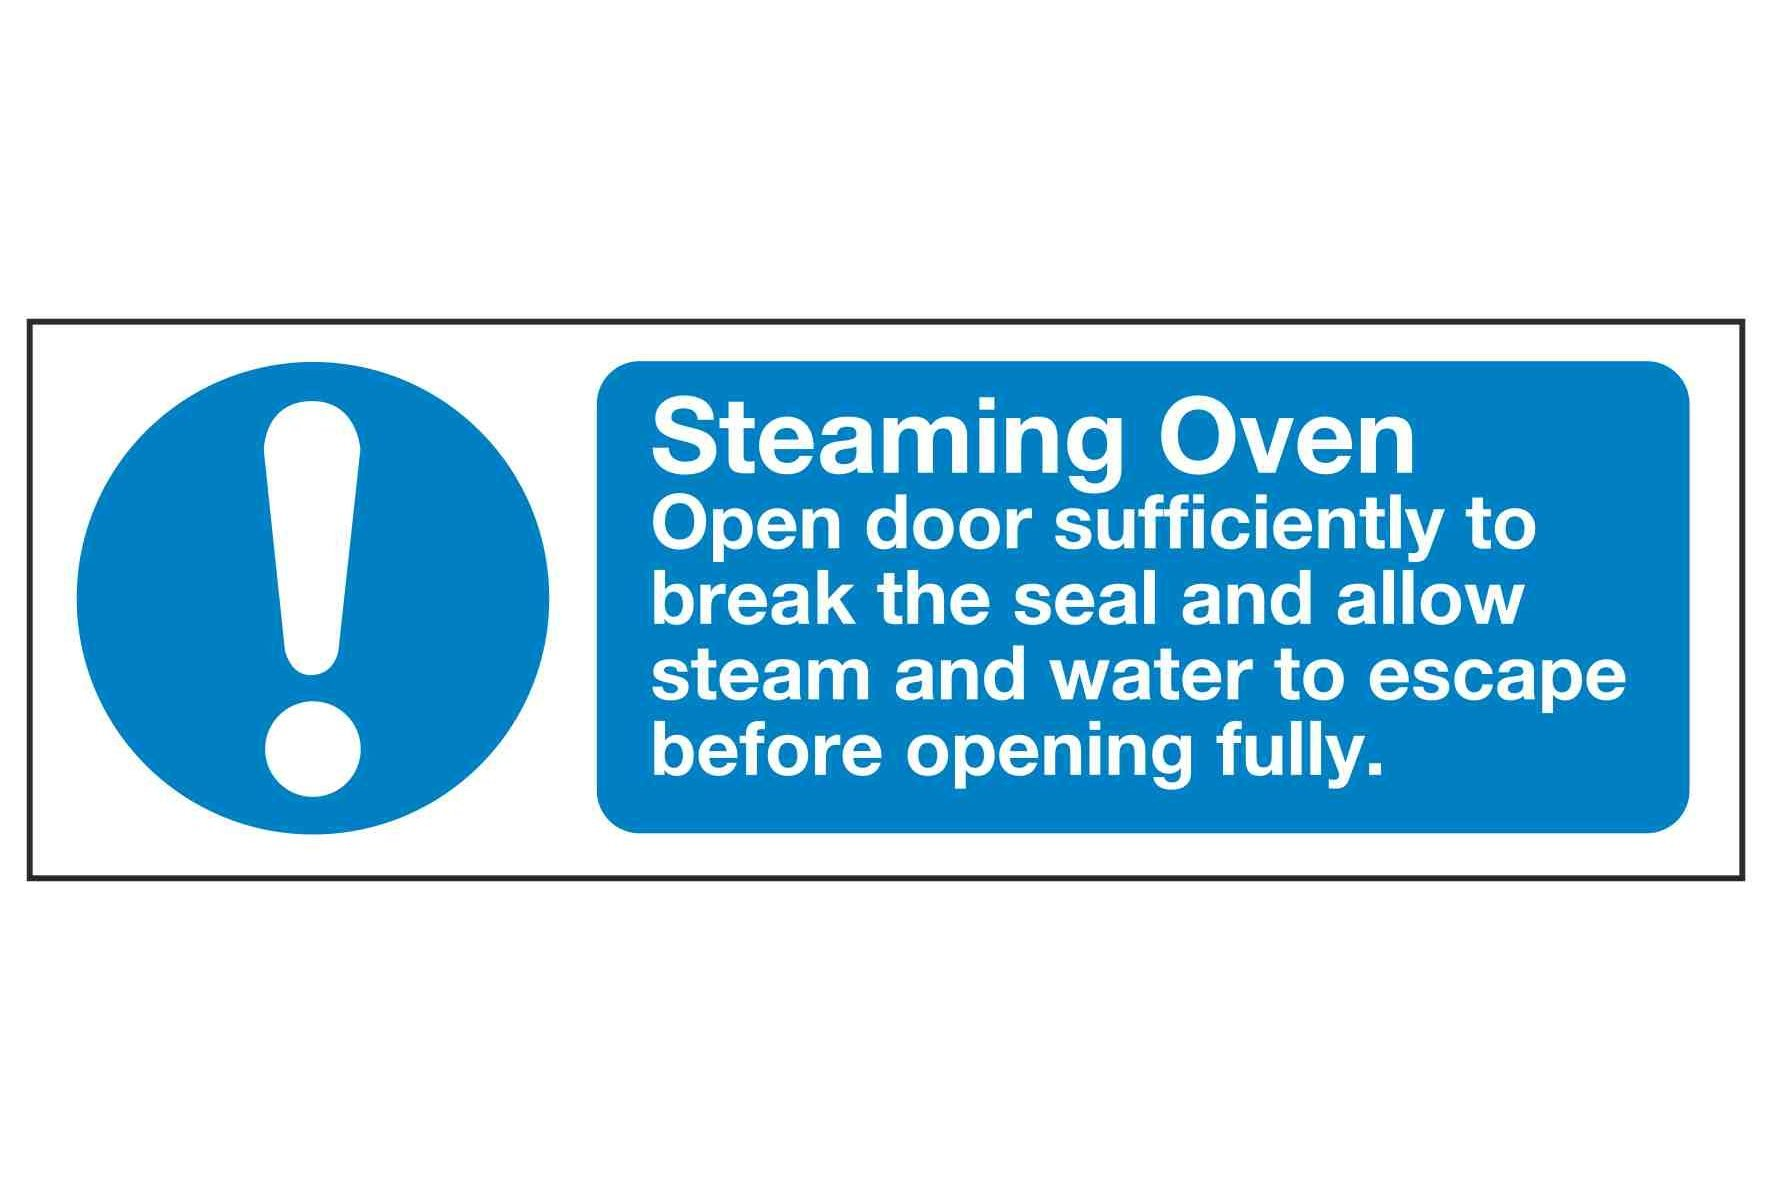 Steaming Oven Open door sufficiently to break the seal and allow steam and water to escape before opening fully.